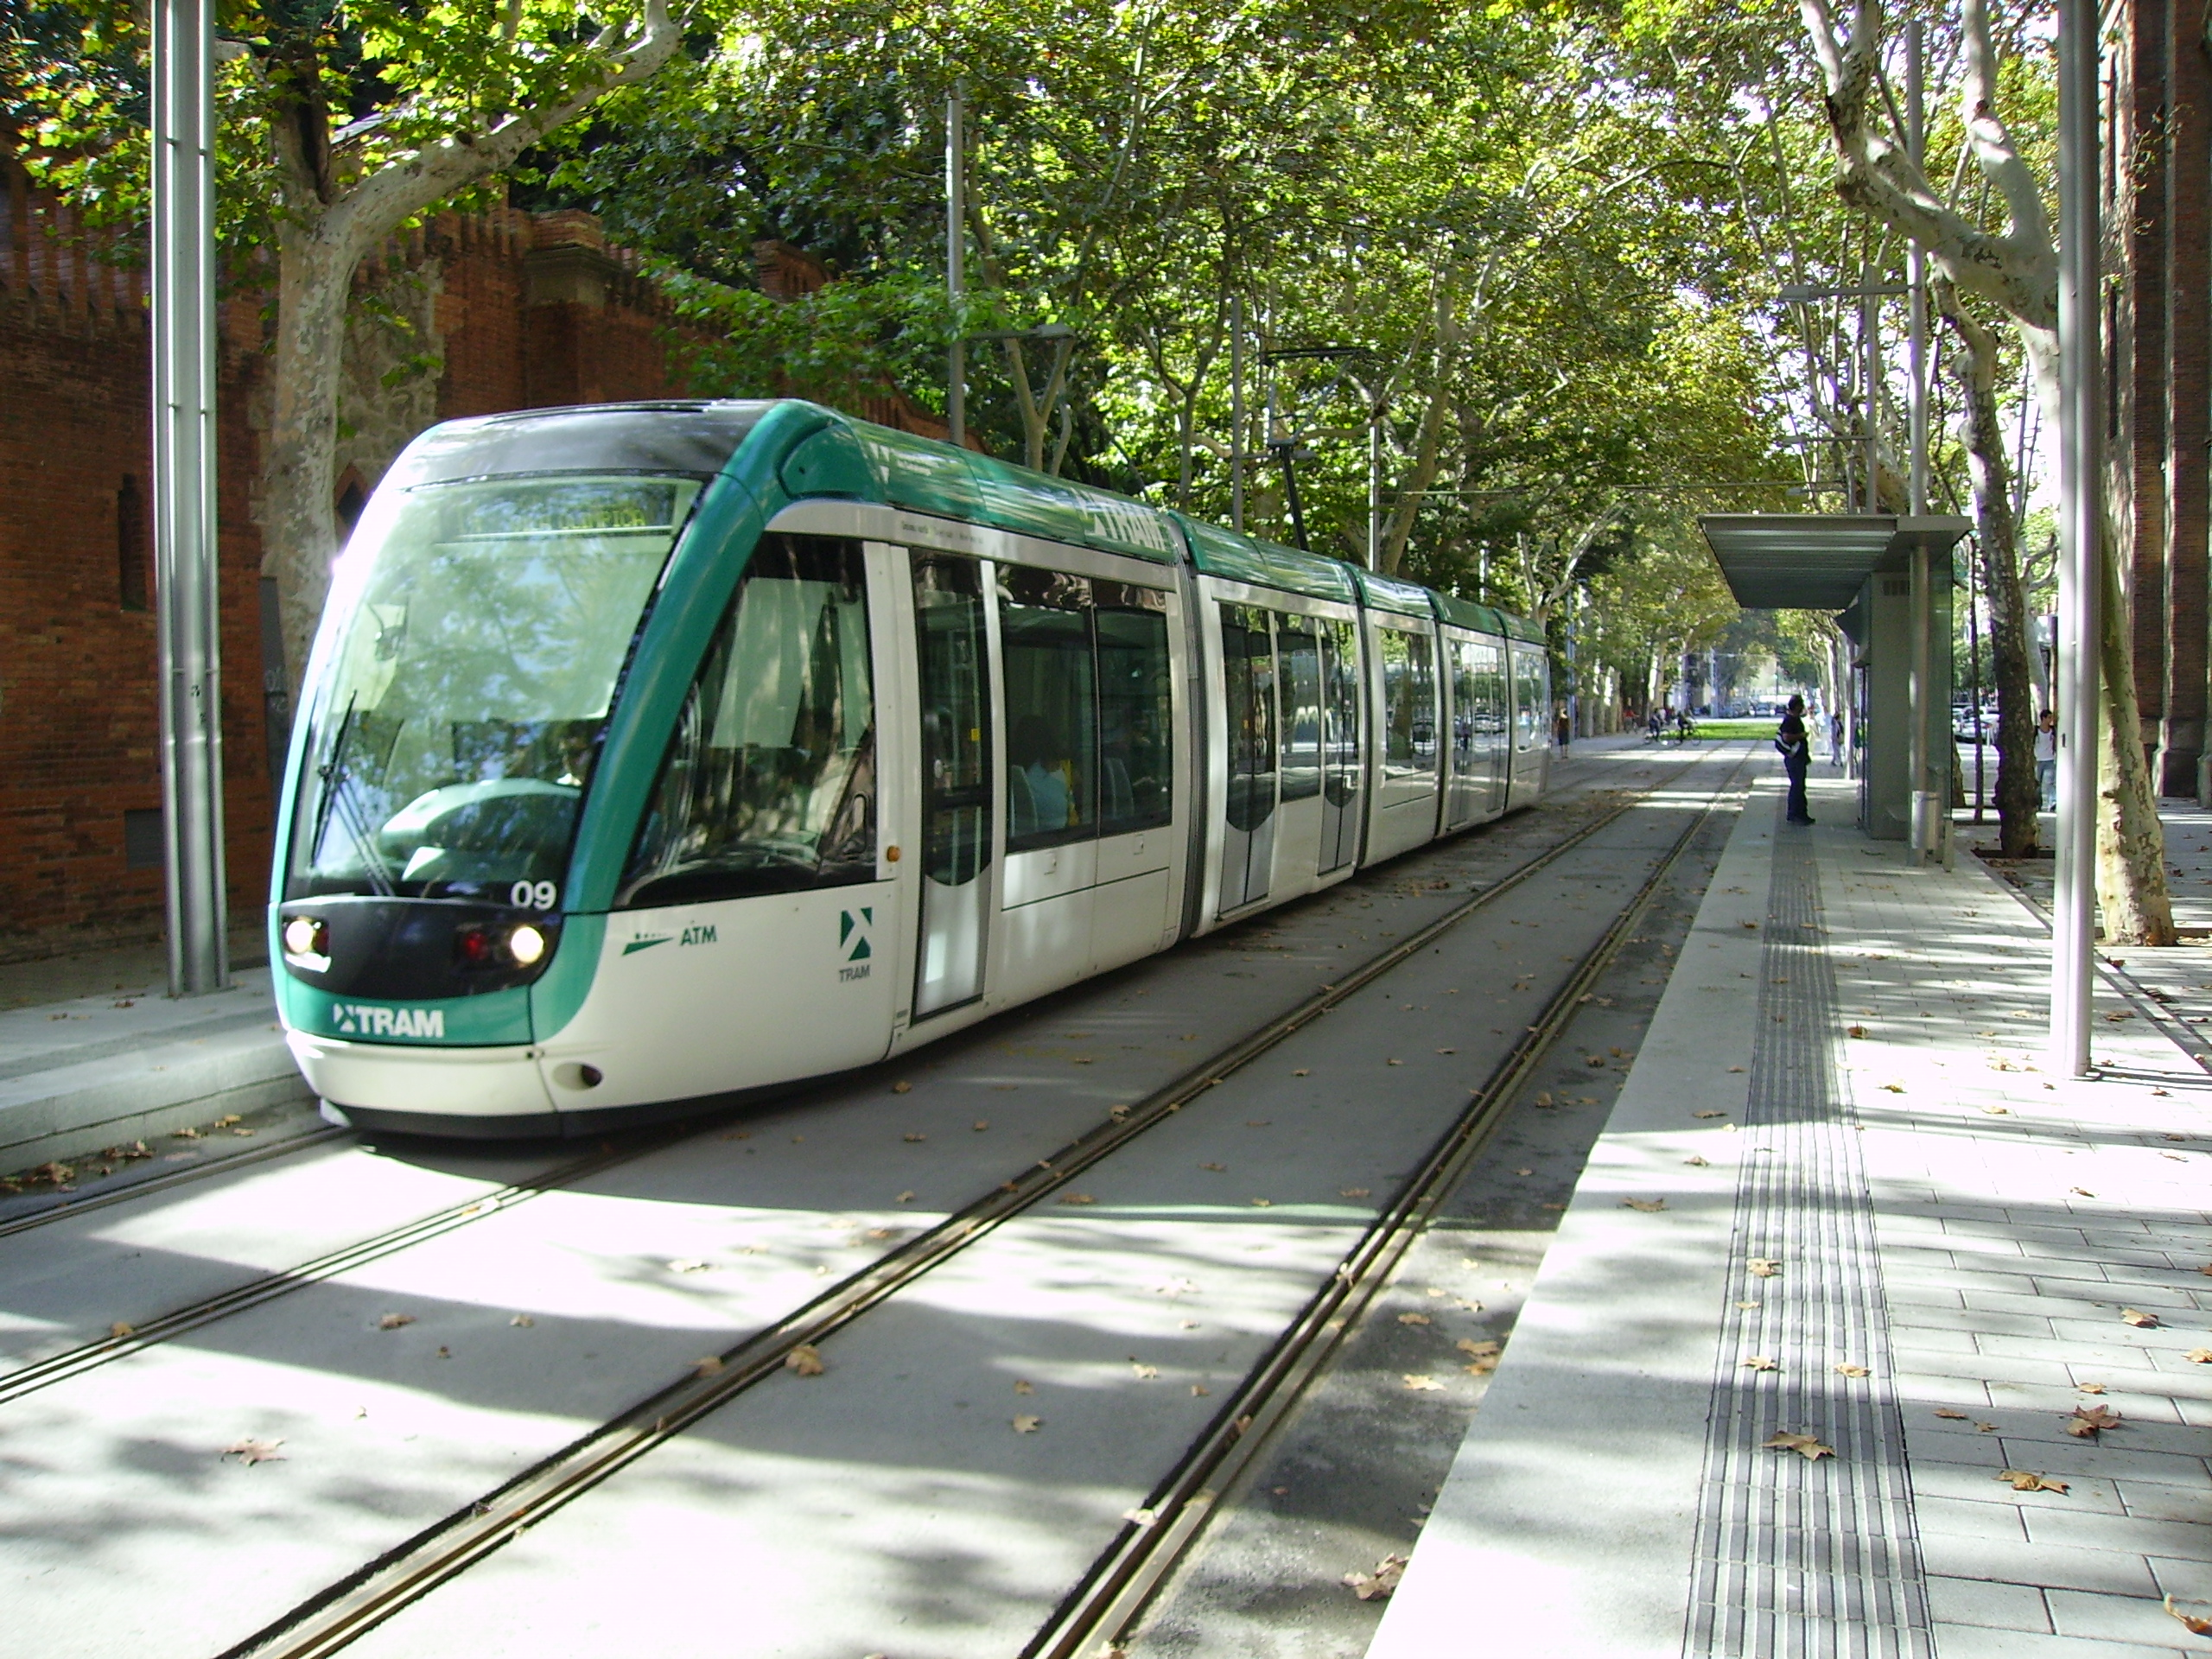 http://upload.wikimedia.org/wikipedia/commons/c/c8/Tram_Barcelona.JPG